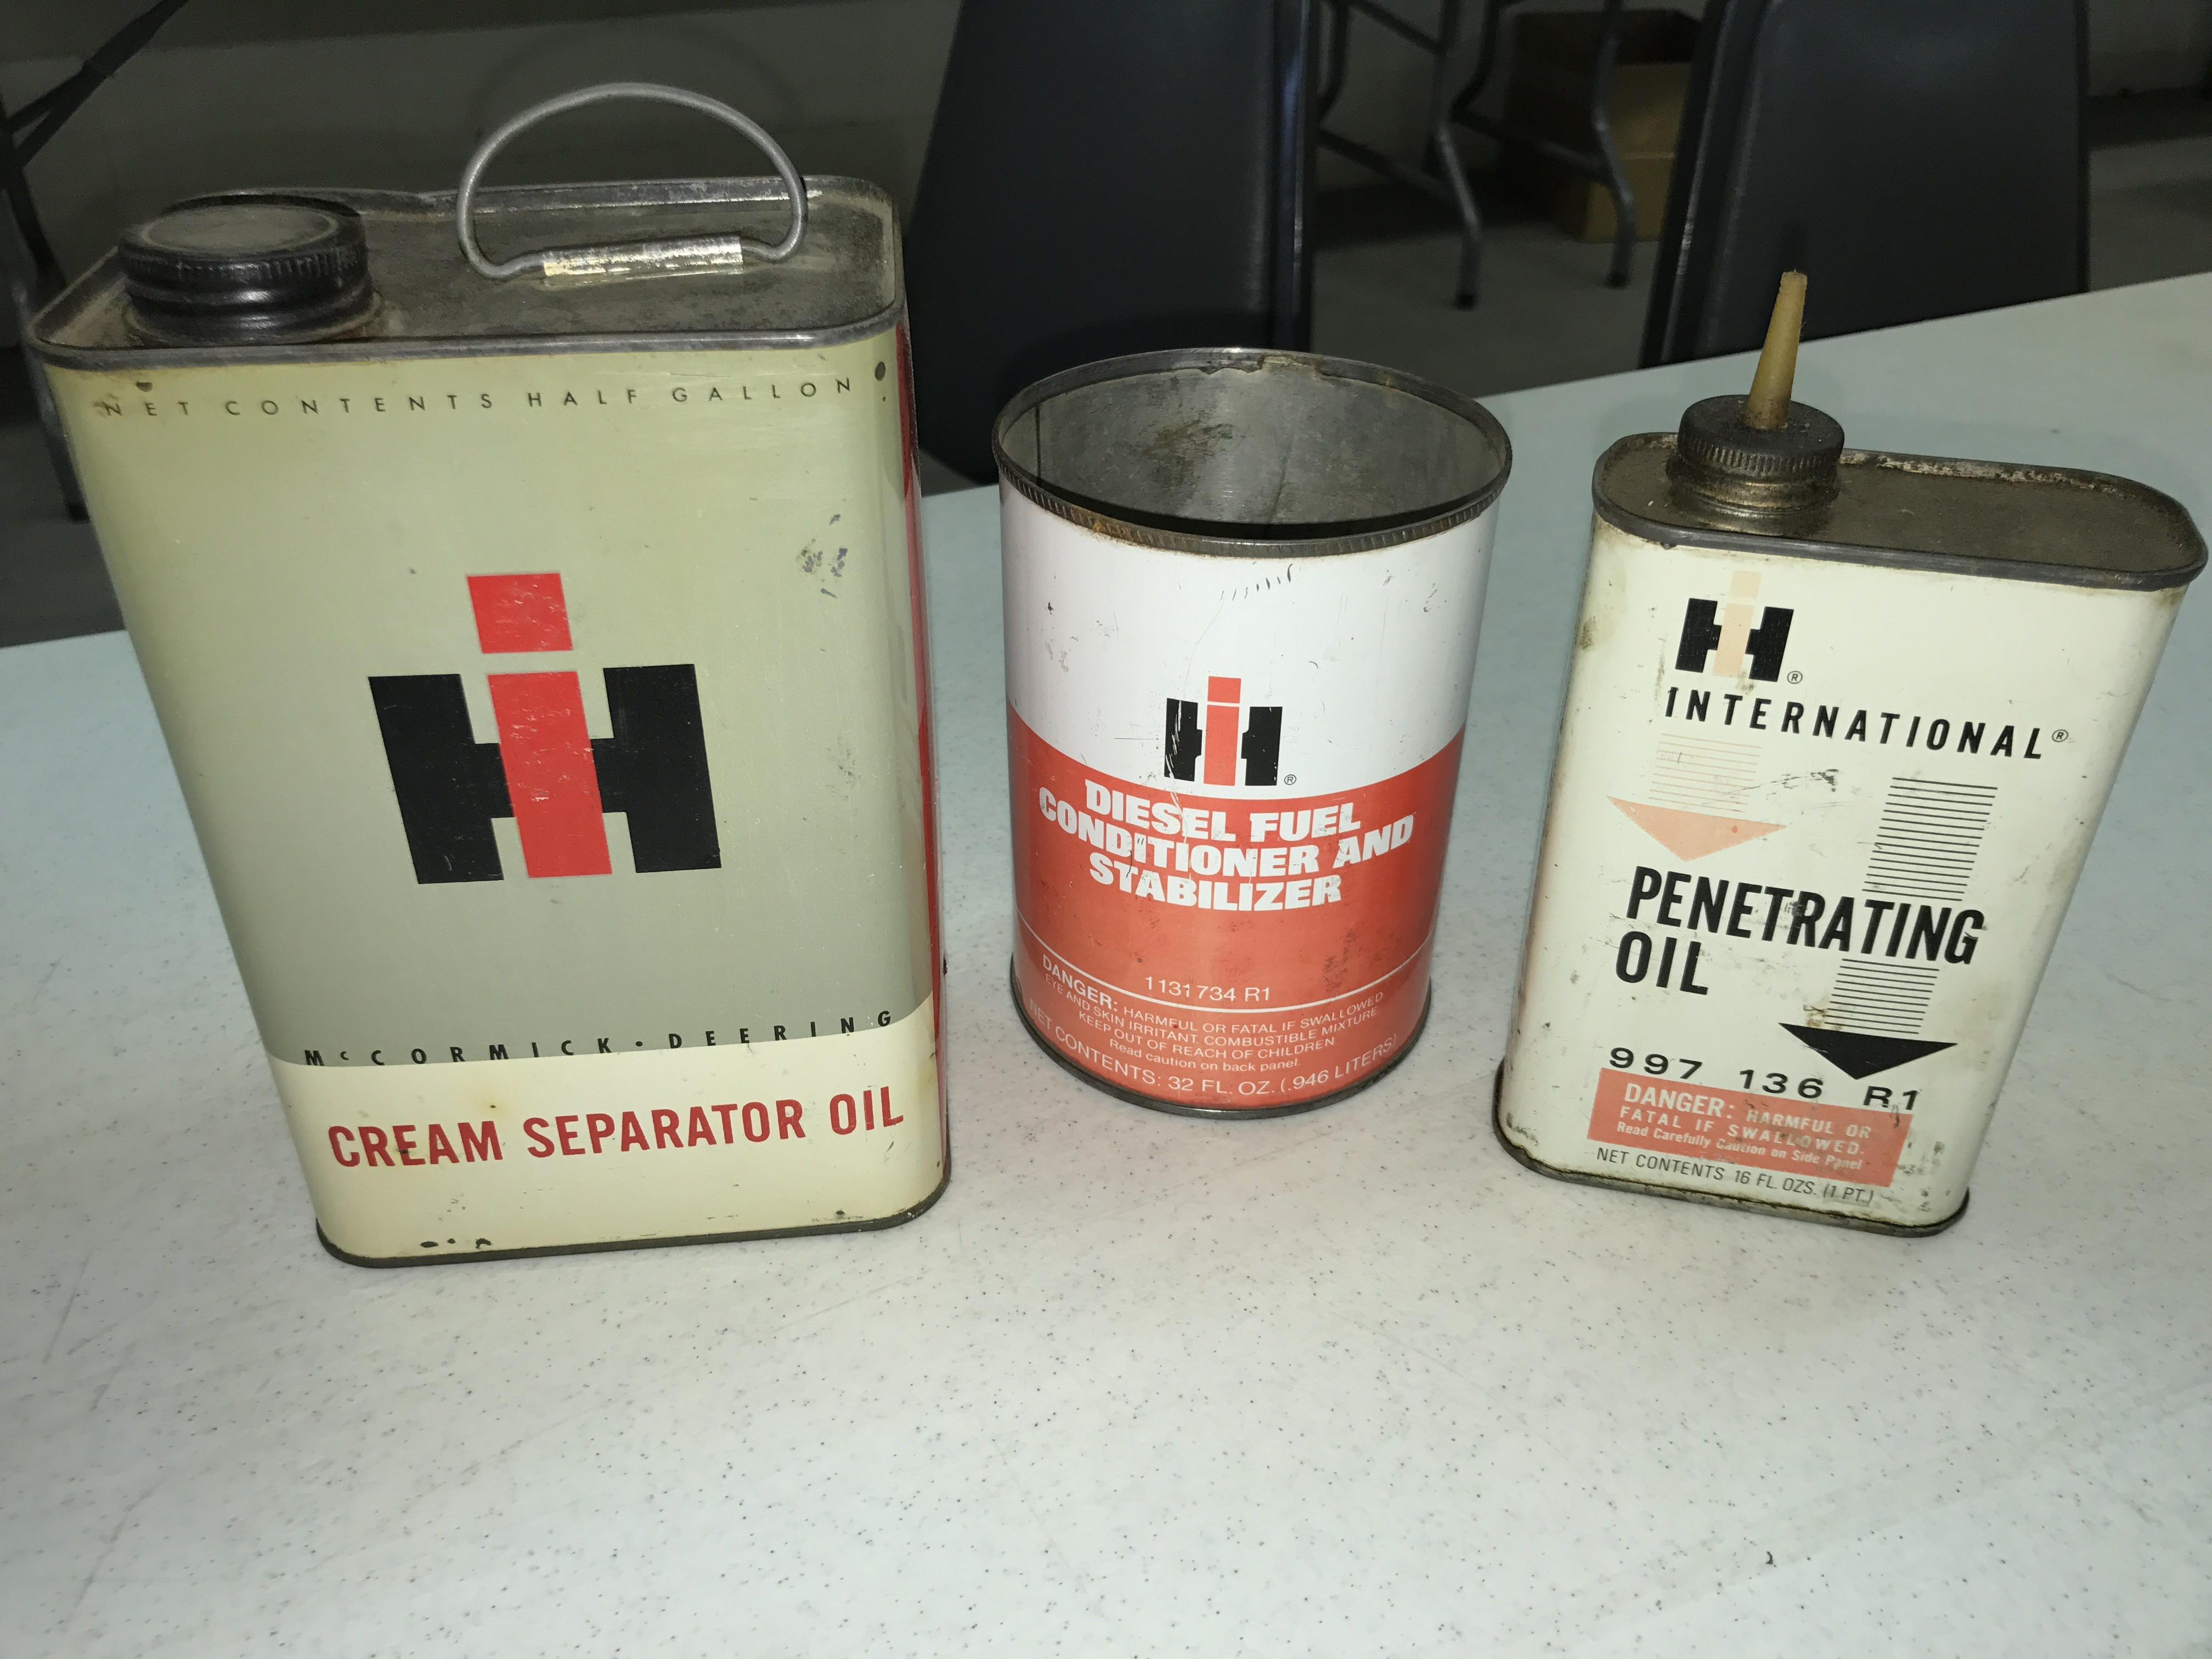 Lot 32 - Cream Seperator Oil Can Penetrating Oil and Stabilizer Can